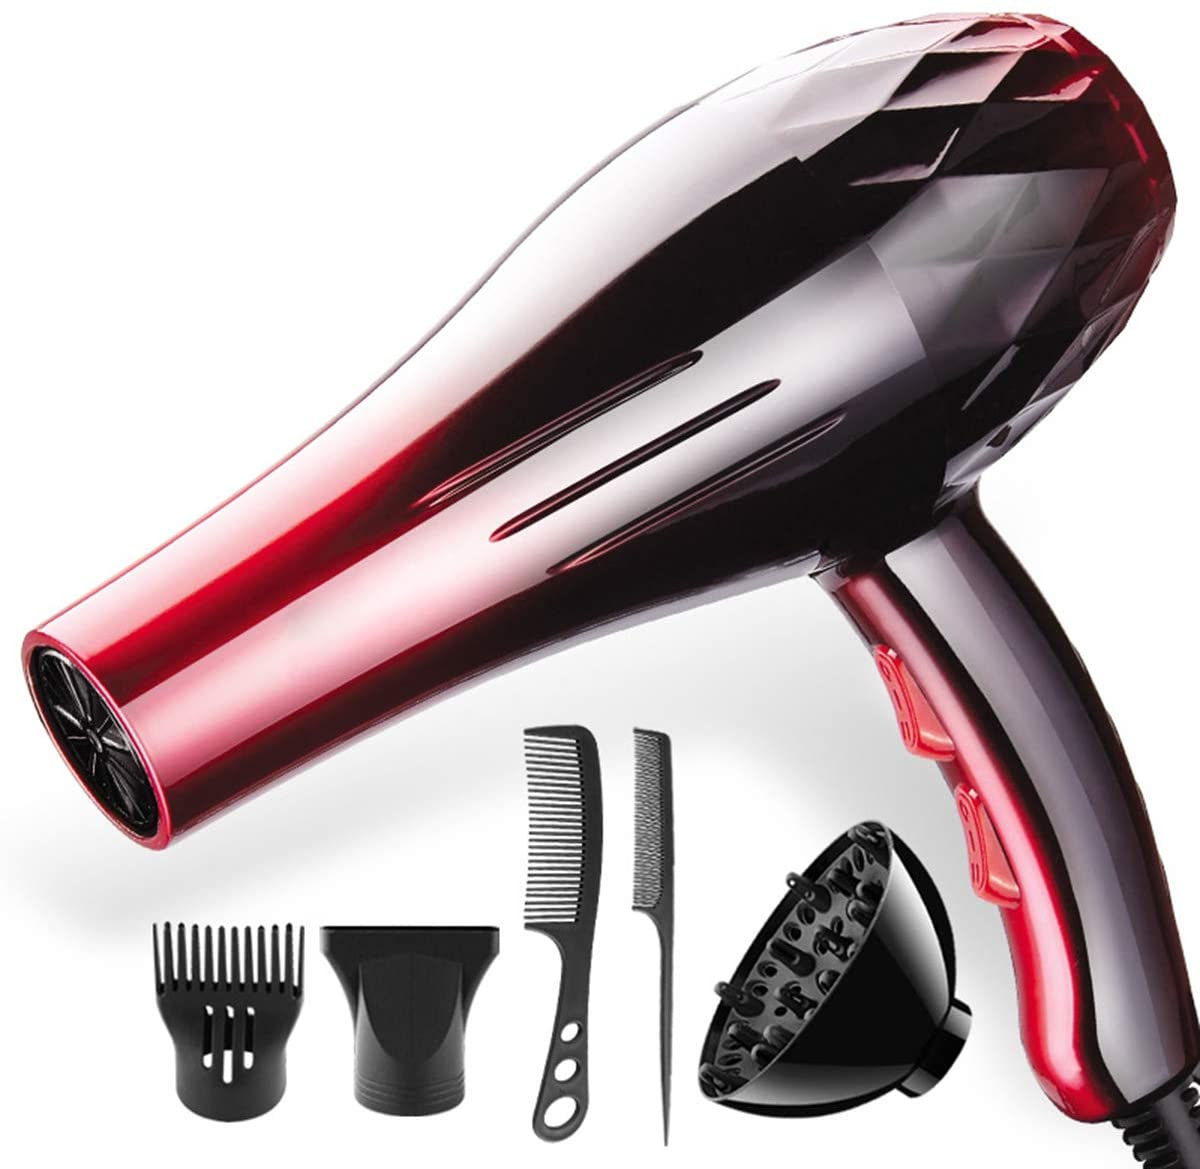 LJ2 2200W Professional Hair Dryer, Blow Dryer Barber Salon Househeld Hot Cold Air Adjustment Hairdryer with 5 Accessories Gift